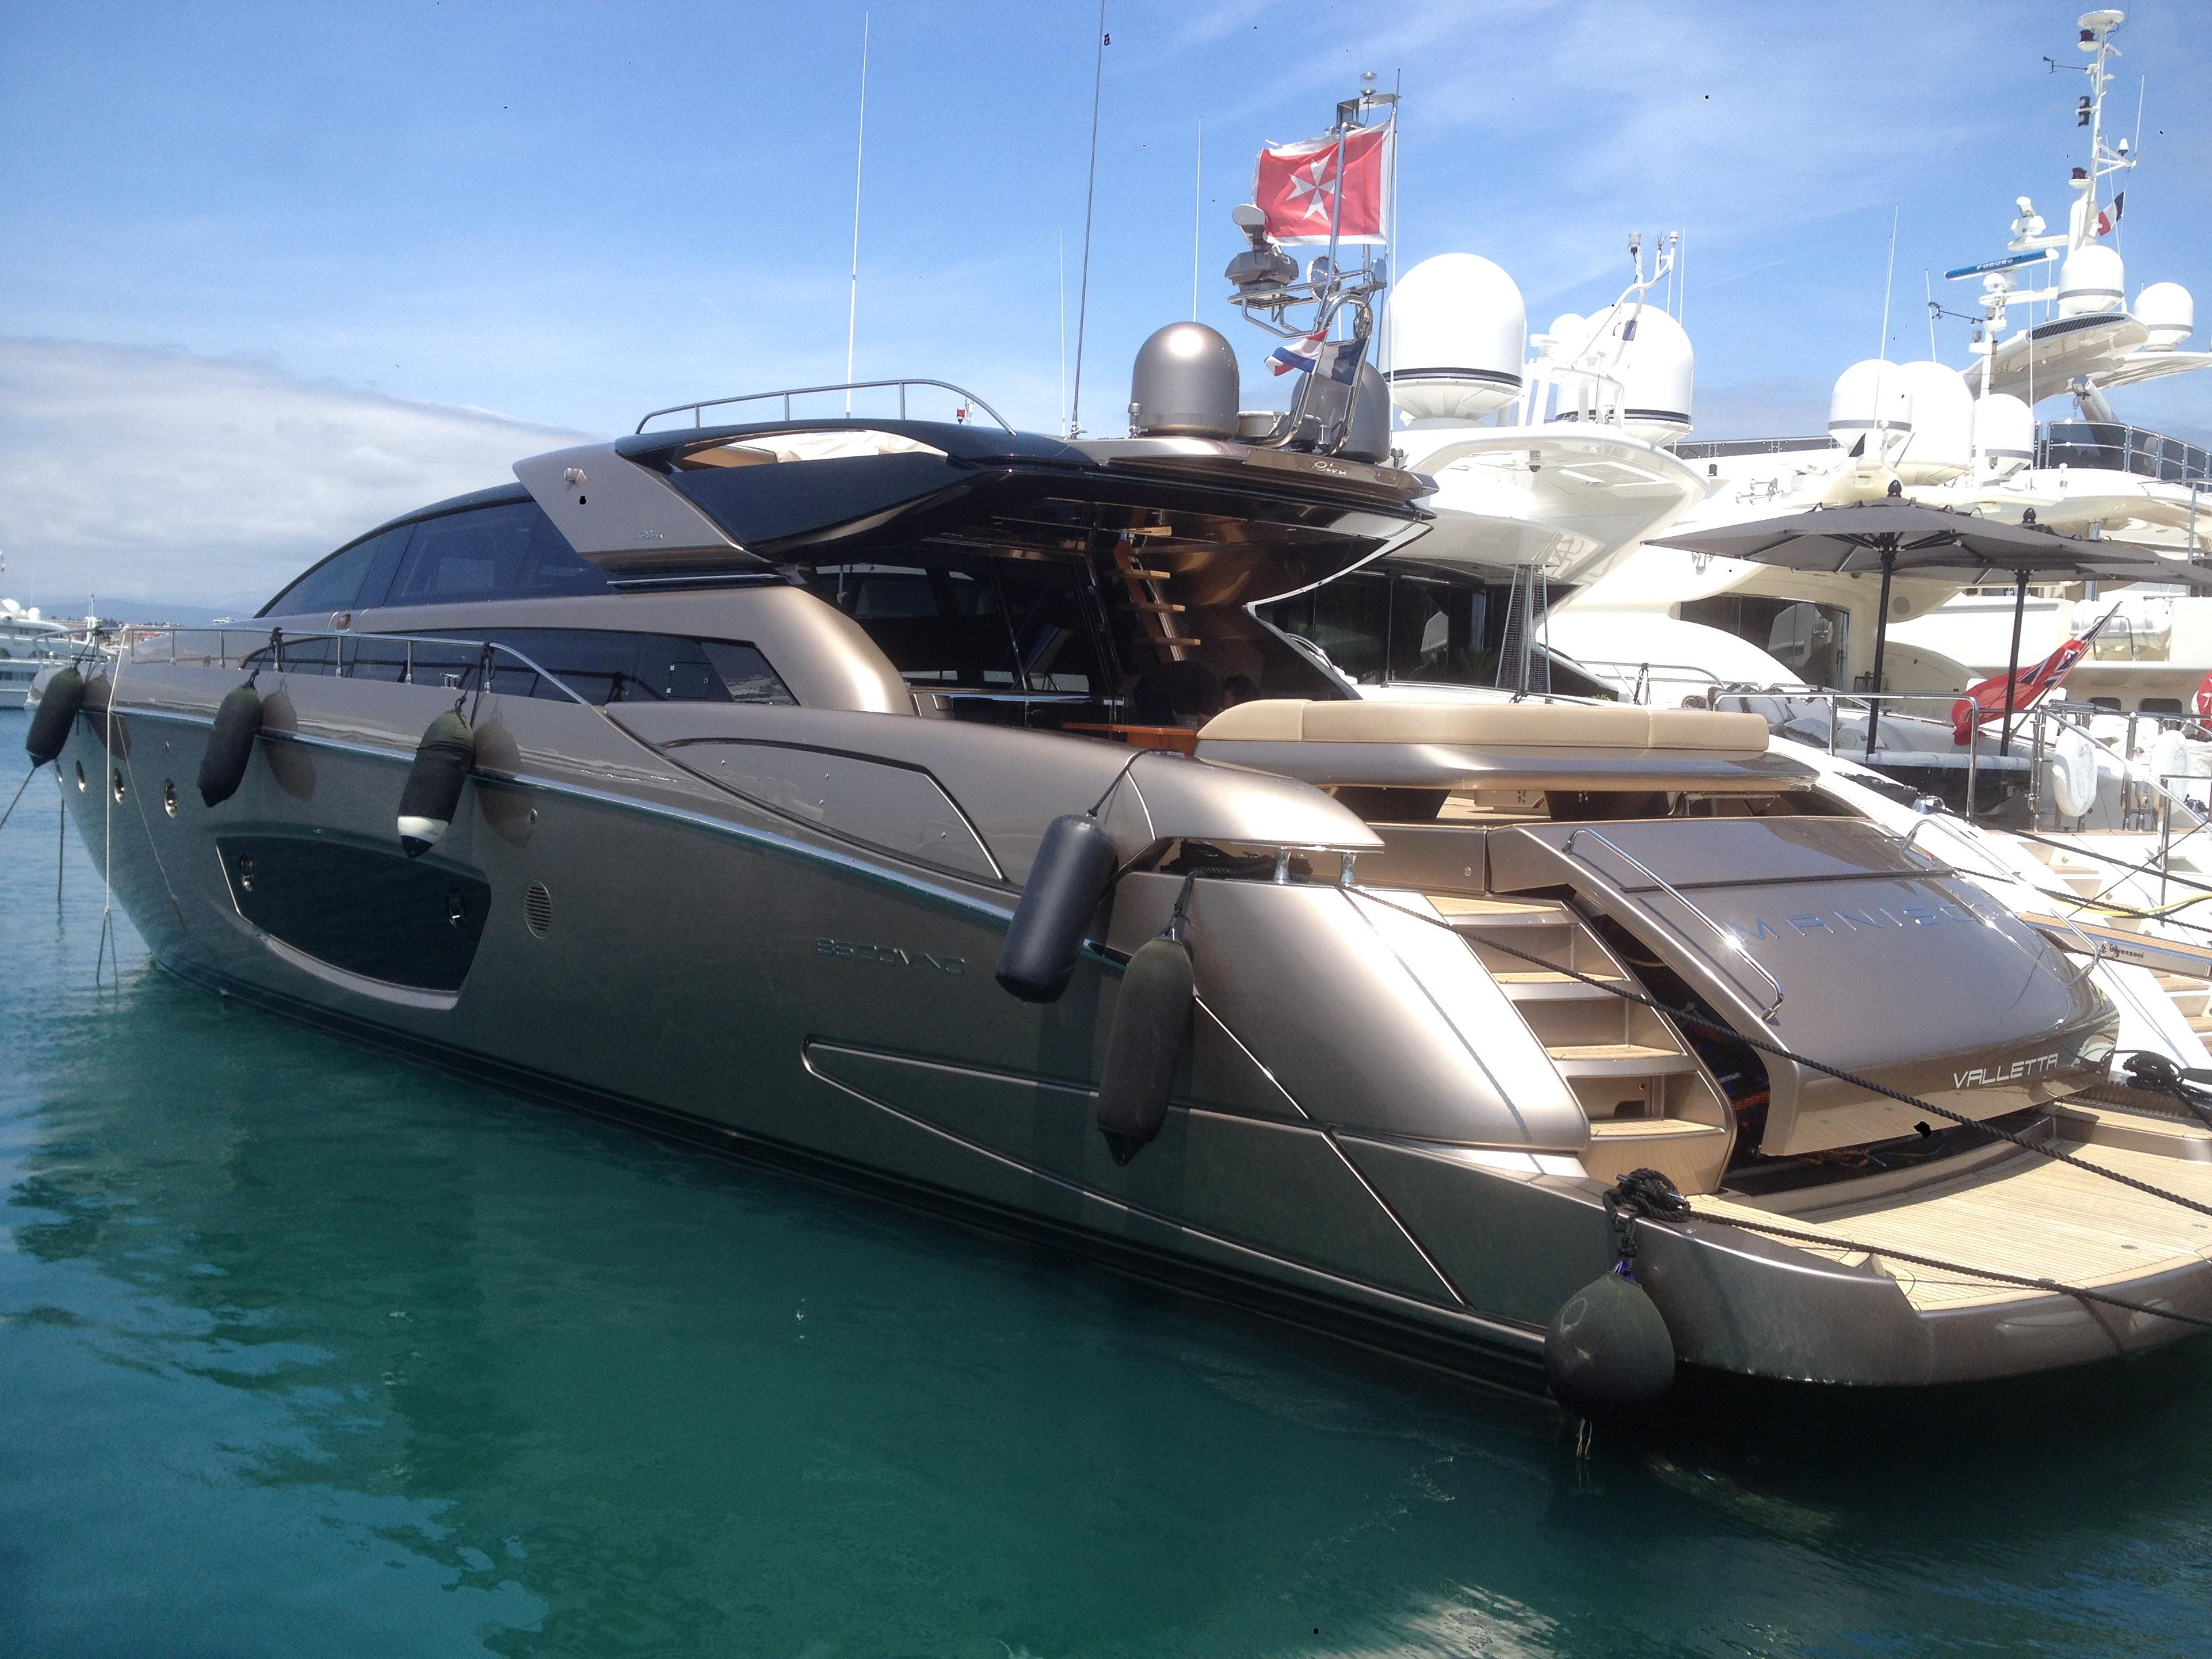 2012 Riva Domino Yacht For Sale In Cannes France Domino Riva